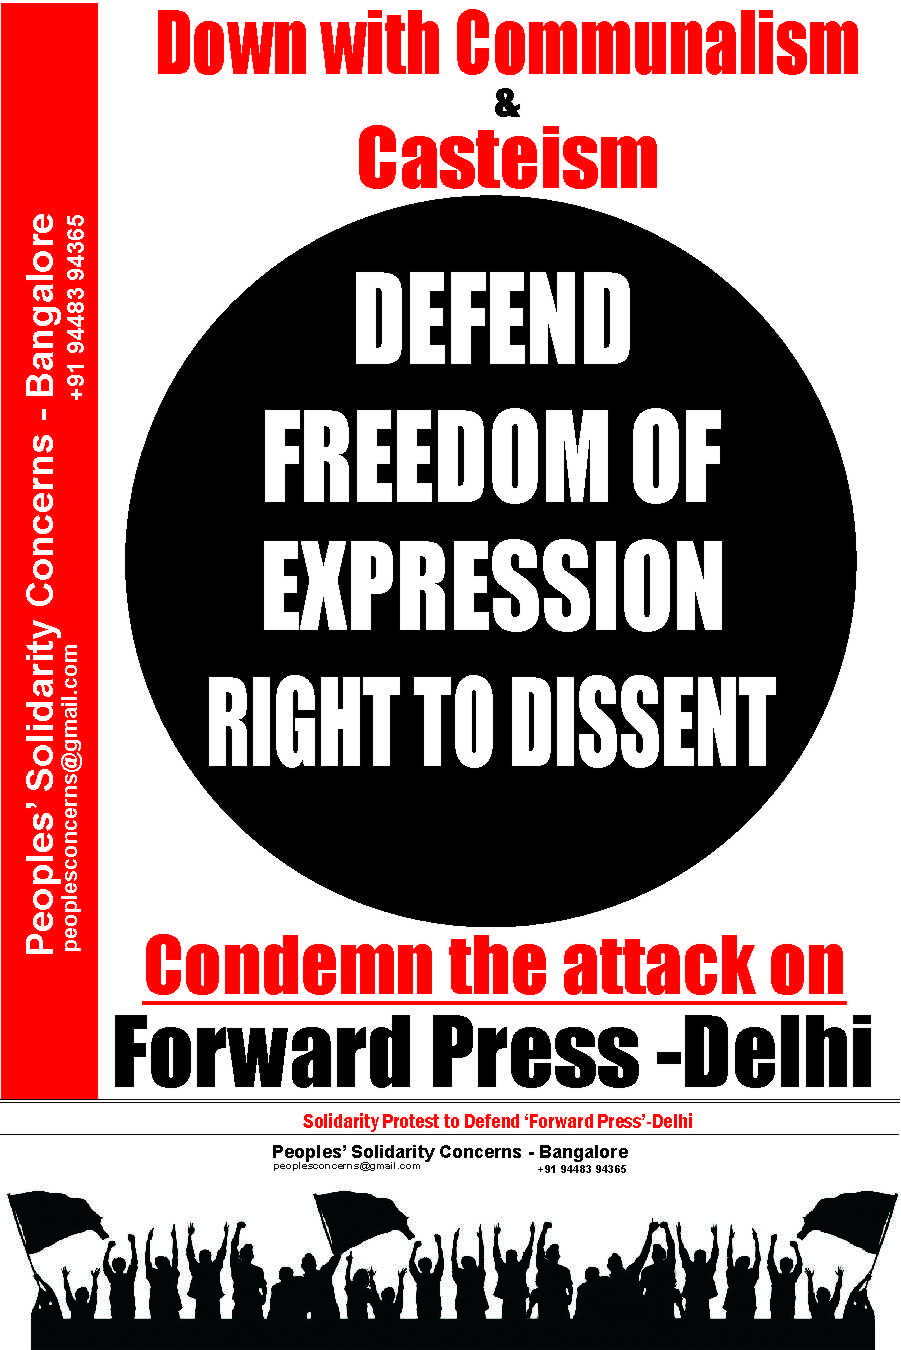 MASS PROTEST TO DEFEND 'FORWARD PRESS' -DELHI